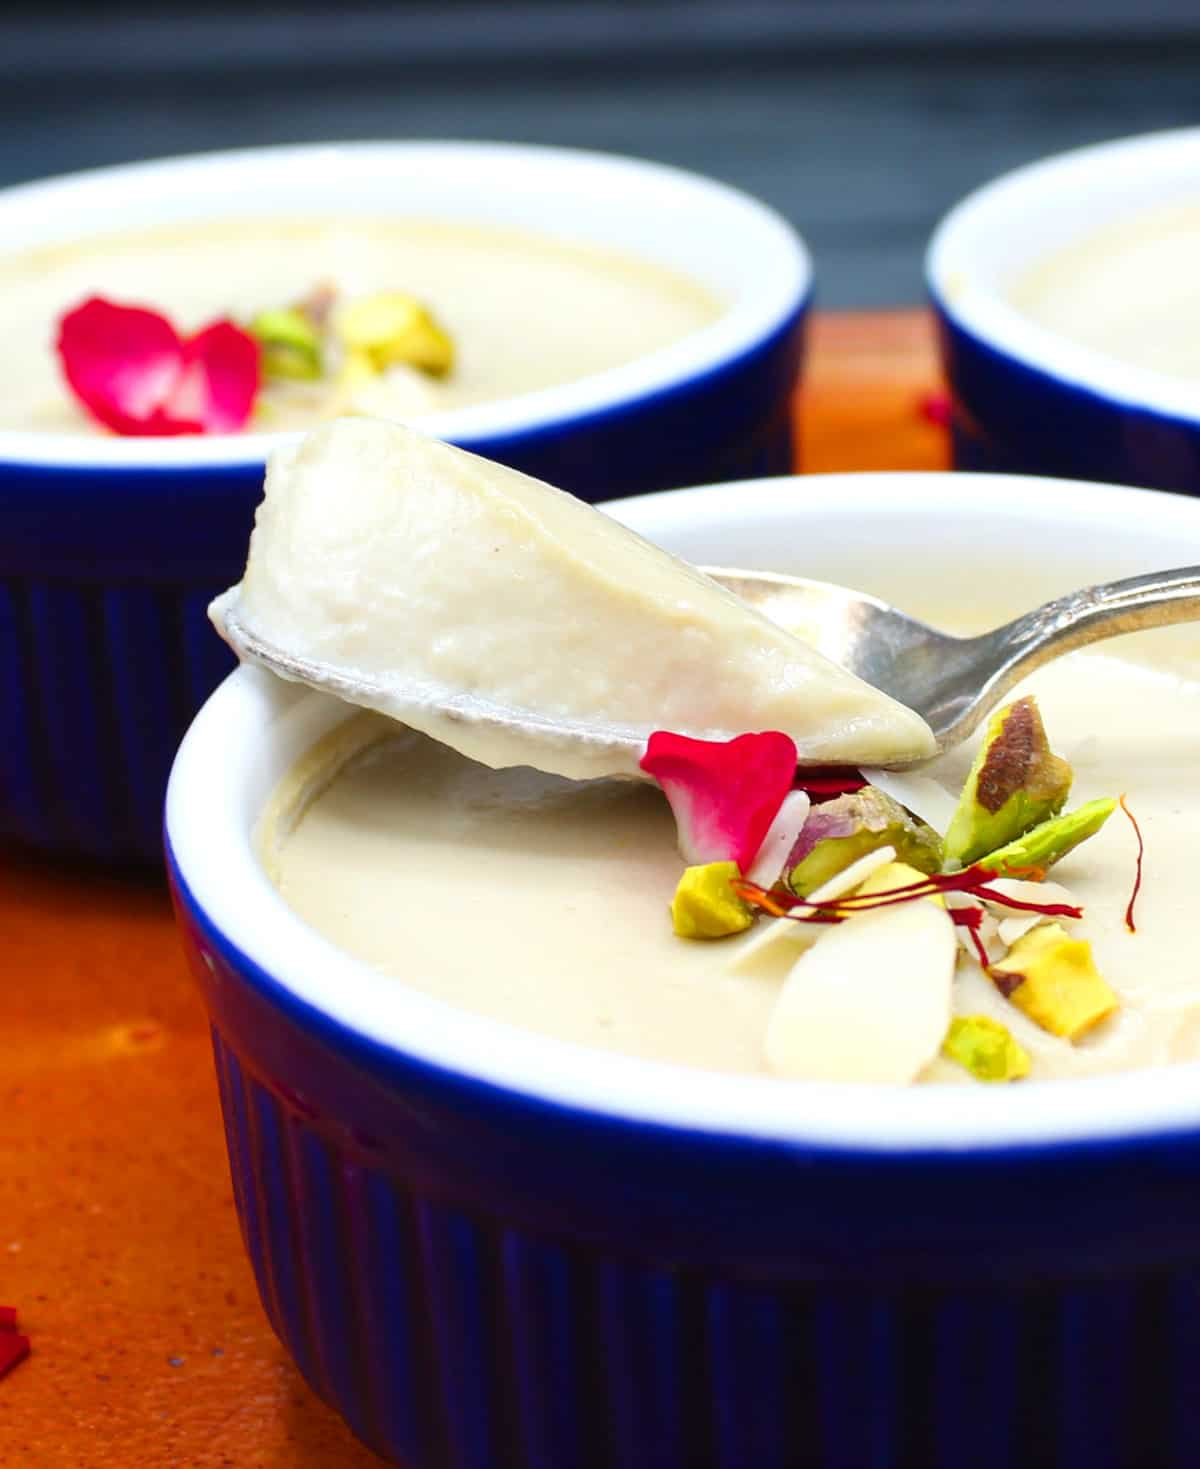 A spoon scooping up a bit of vegan mishti doi from a blue and white ramekin garnished with rose petals, pistachio, almonds and saffron.